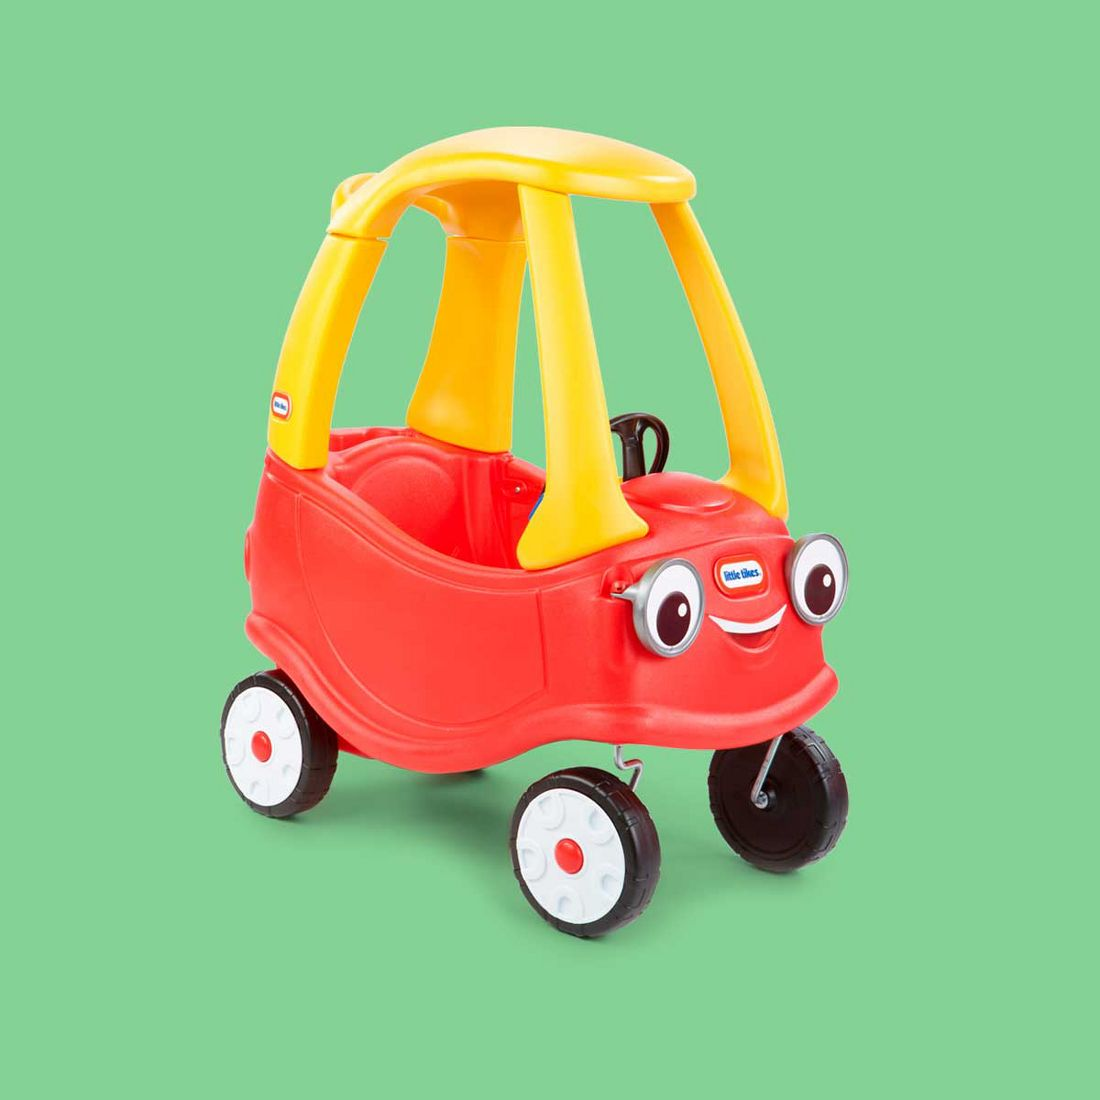 Toddler Toys Target Cuddle Me Pajamas Red The Angry Birds Movie Cozy Coupe